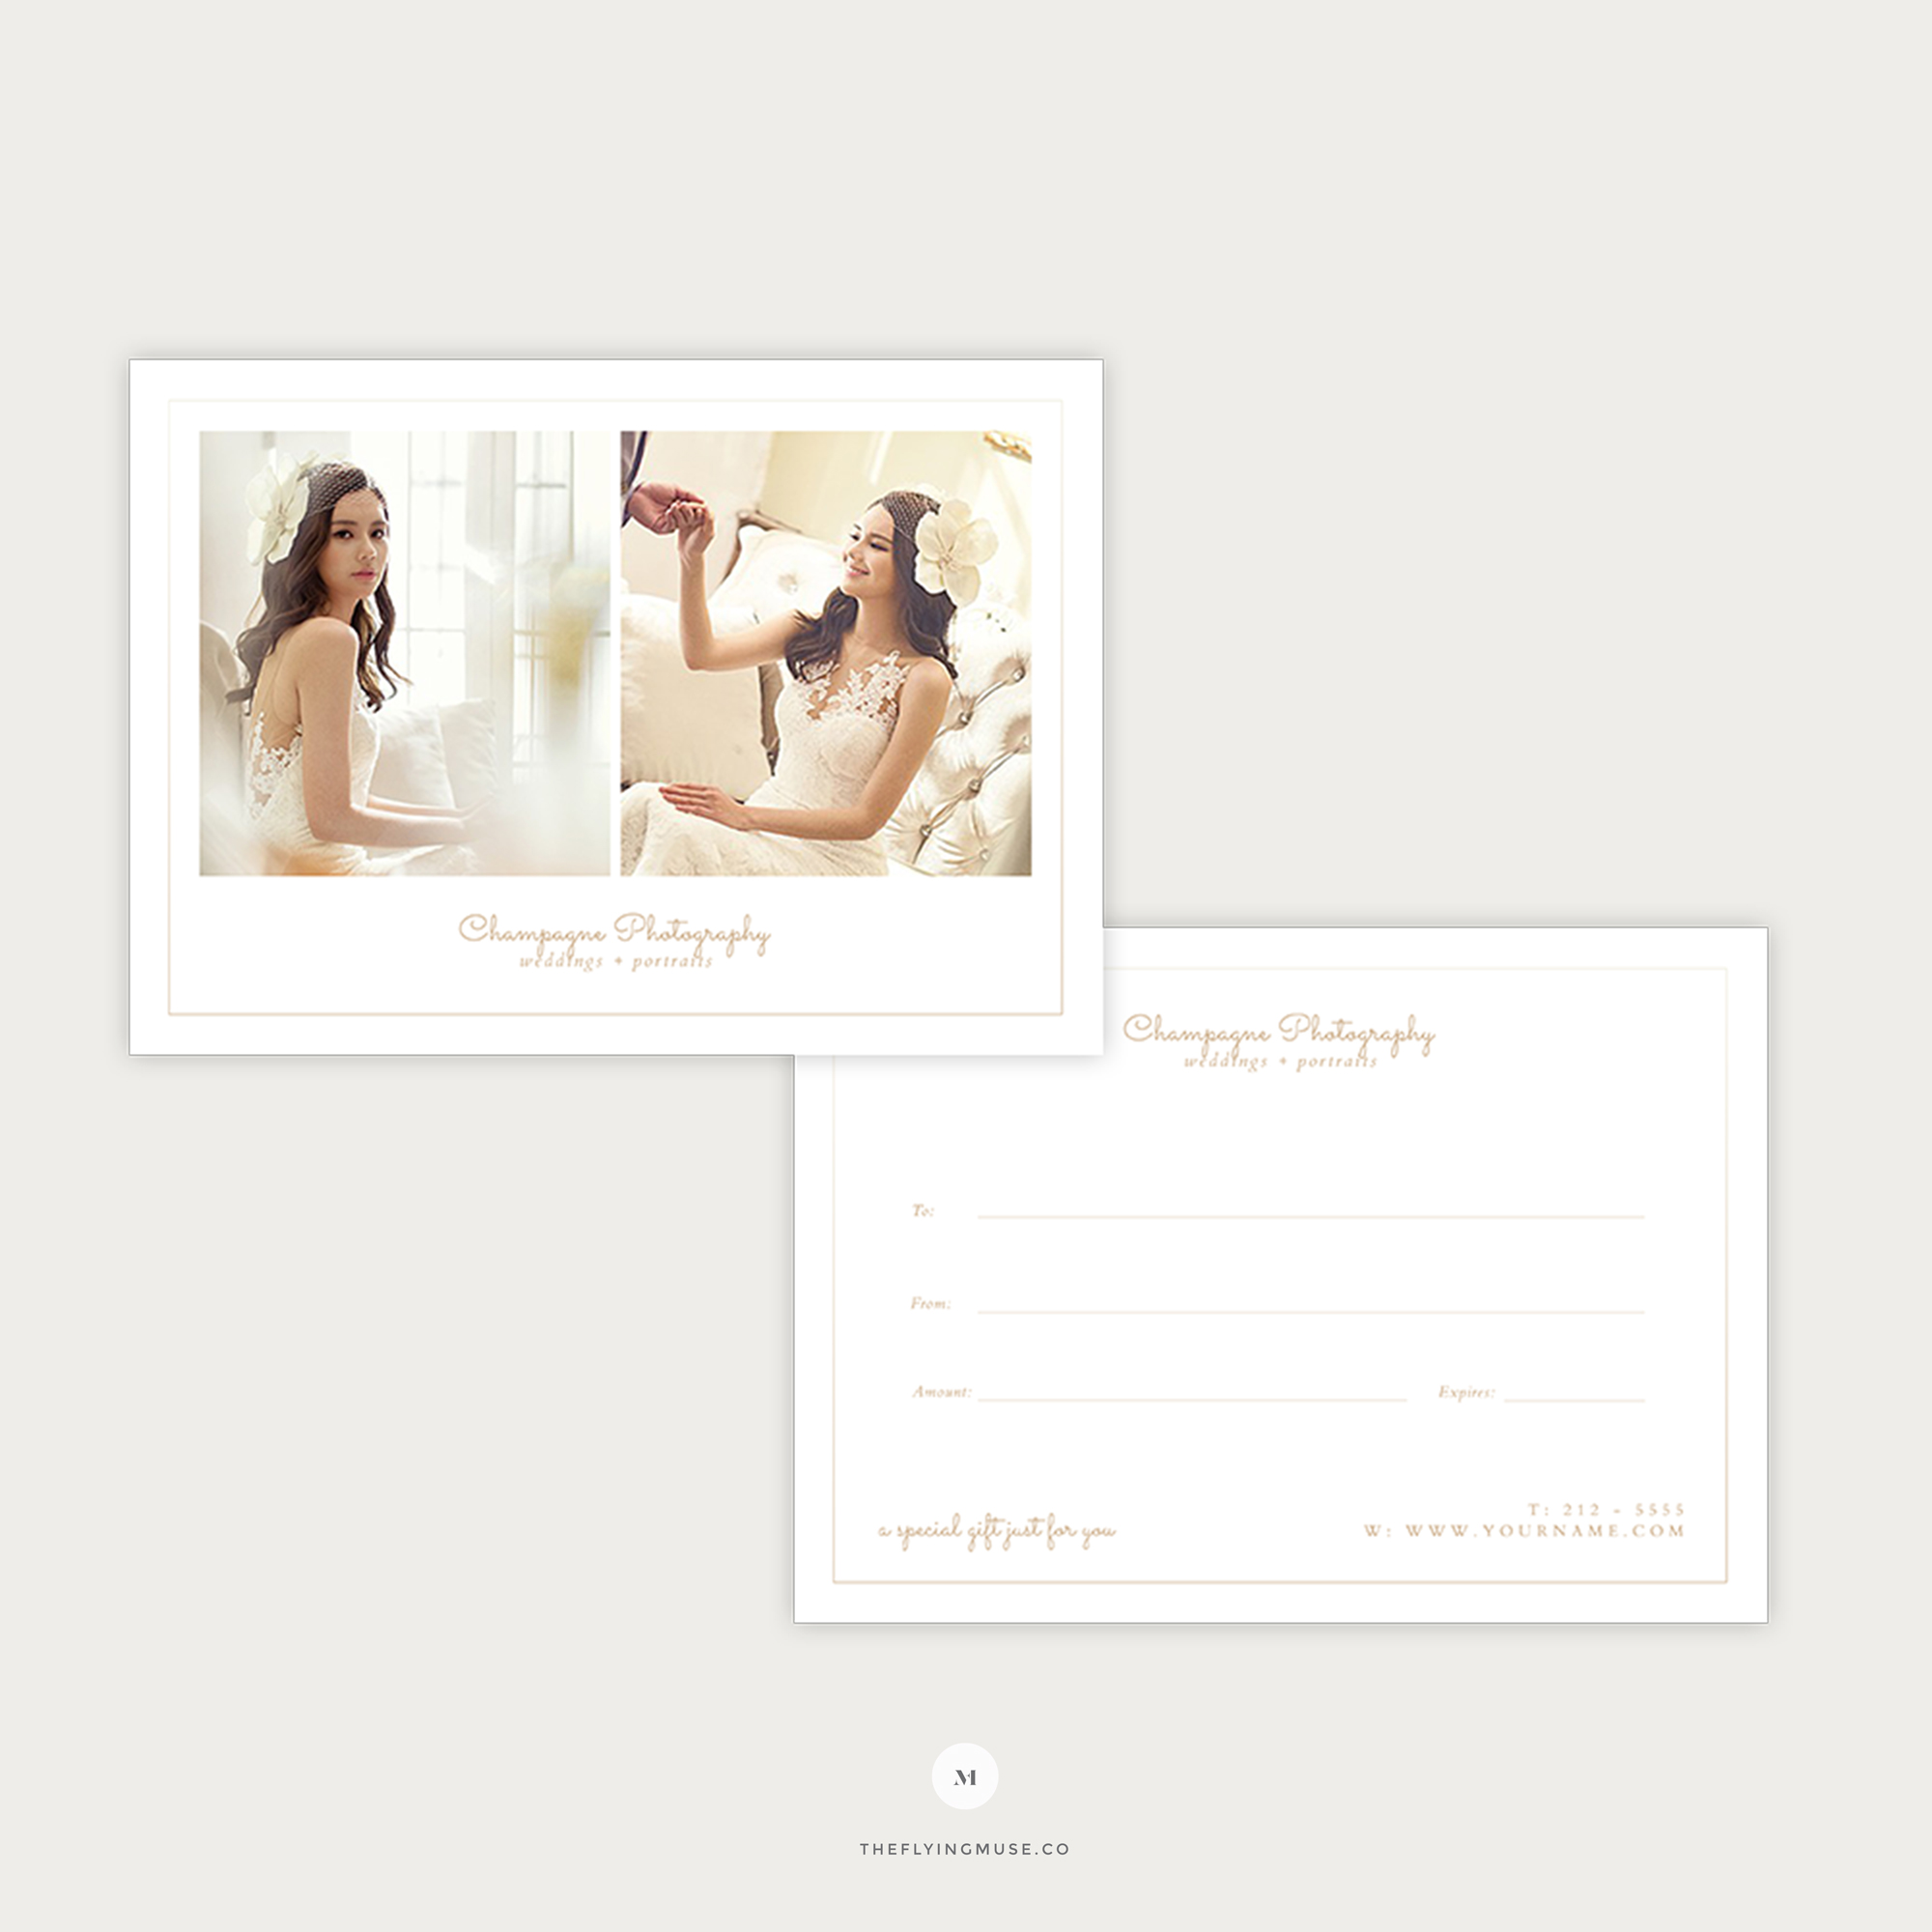 Minimal gift certificate template for wedding photographers minimal gift certificate template for wedding photographers yadclub Choice Image